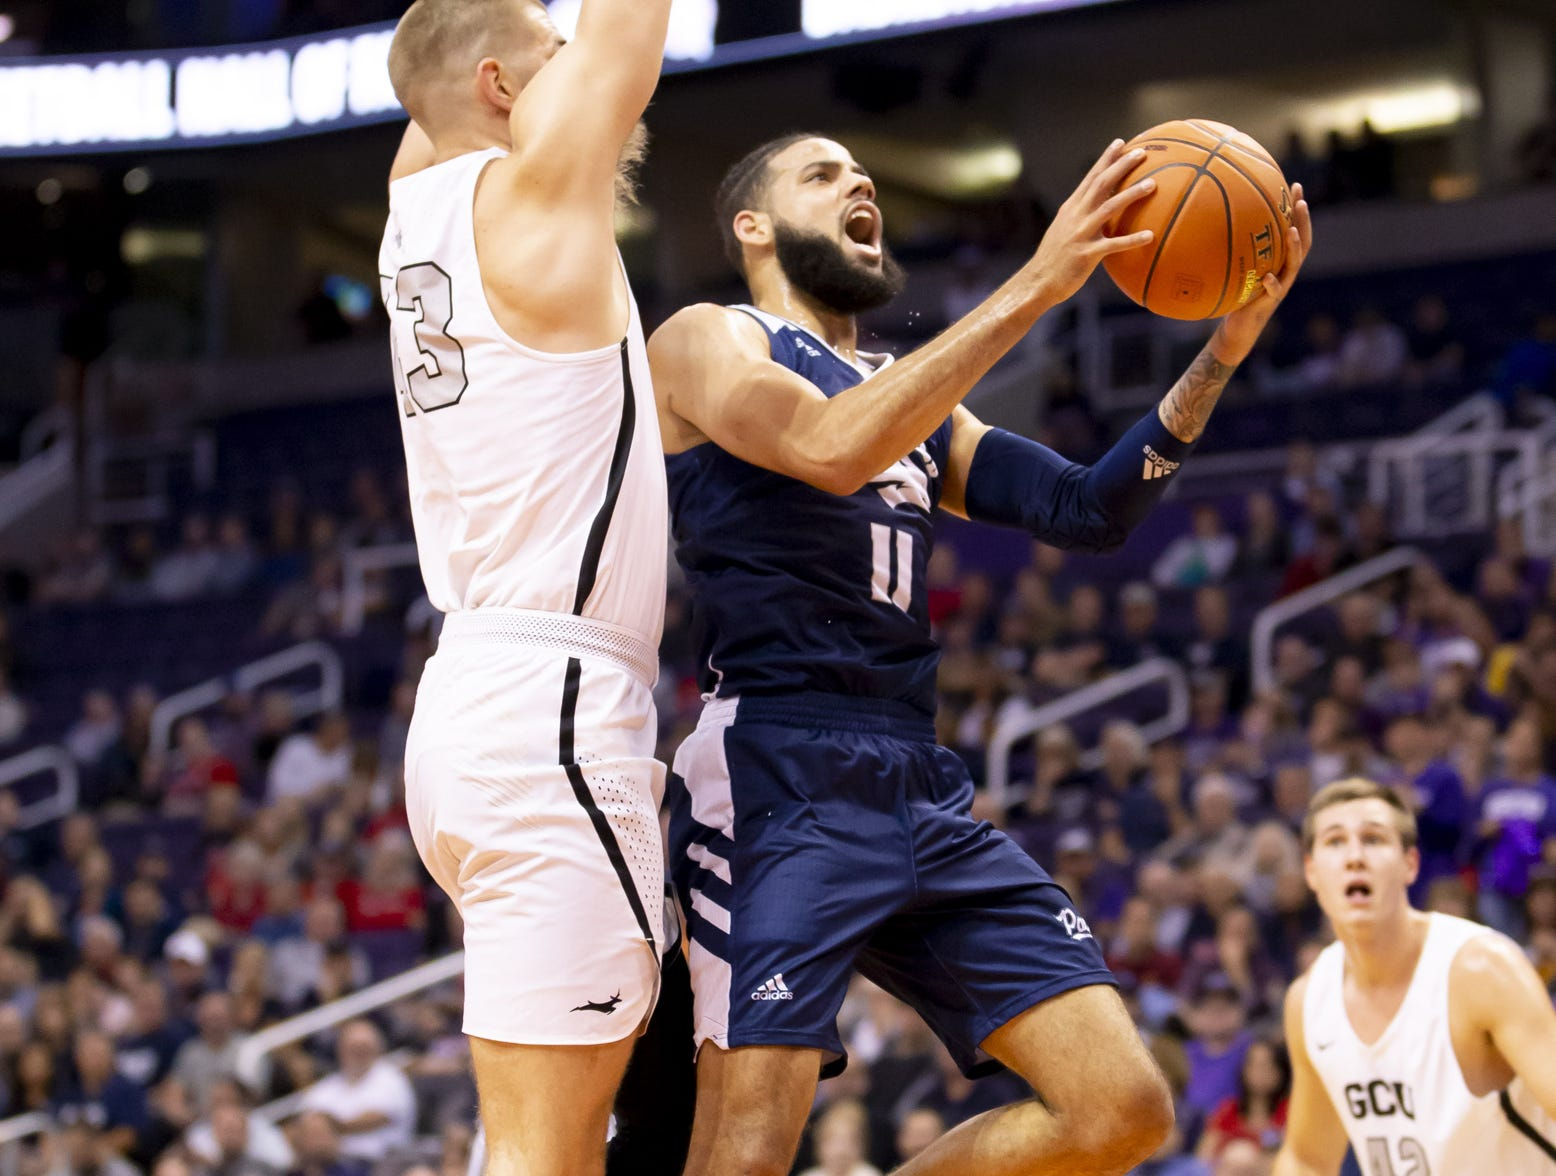 Forward Cody Martin (11) of Nevada Wolf Pack drives to the basket against the Grand Canyon Antelopes during the 2018 Jerry Colangelo Classic at Talking Stick Resort Arena on Sunday, December 9, 2018 in Phoenix, Arizona.